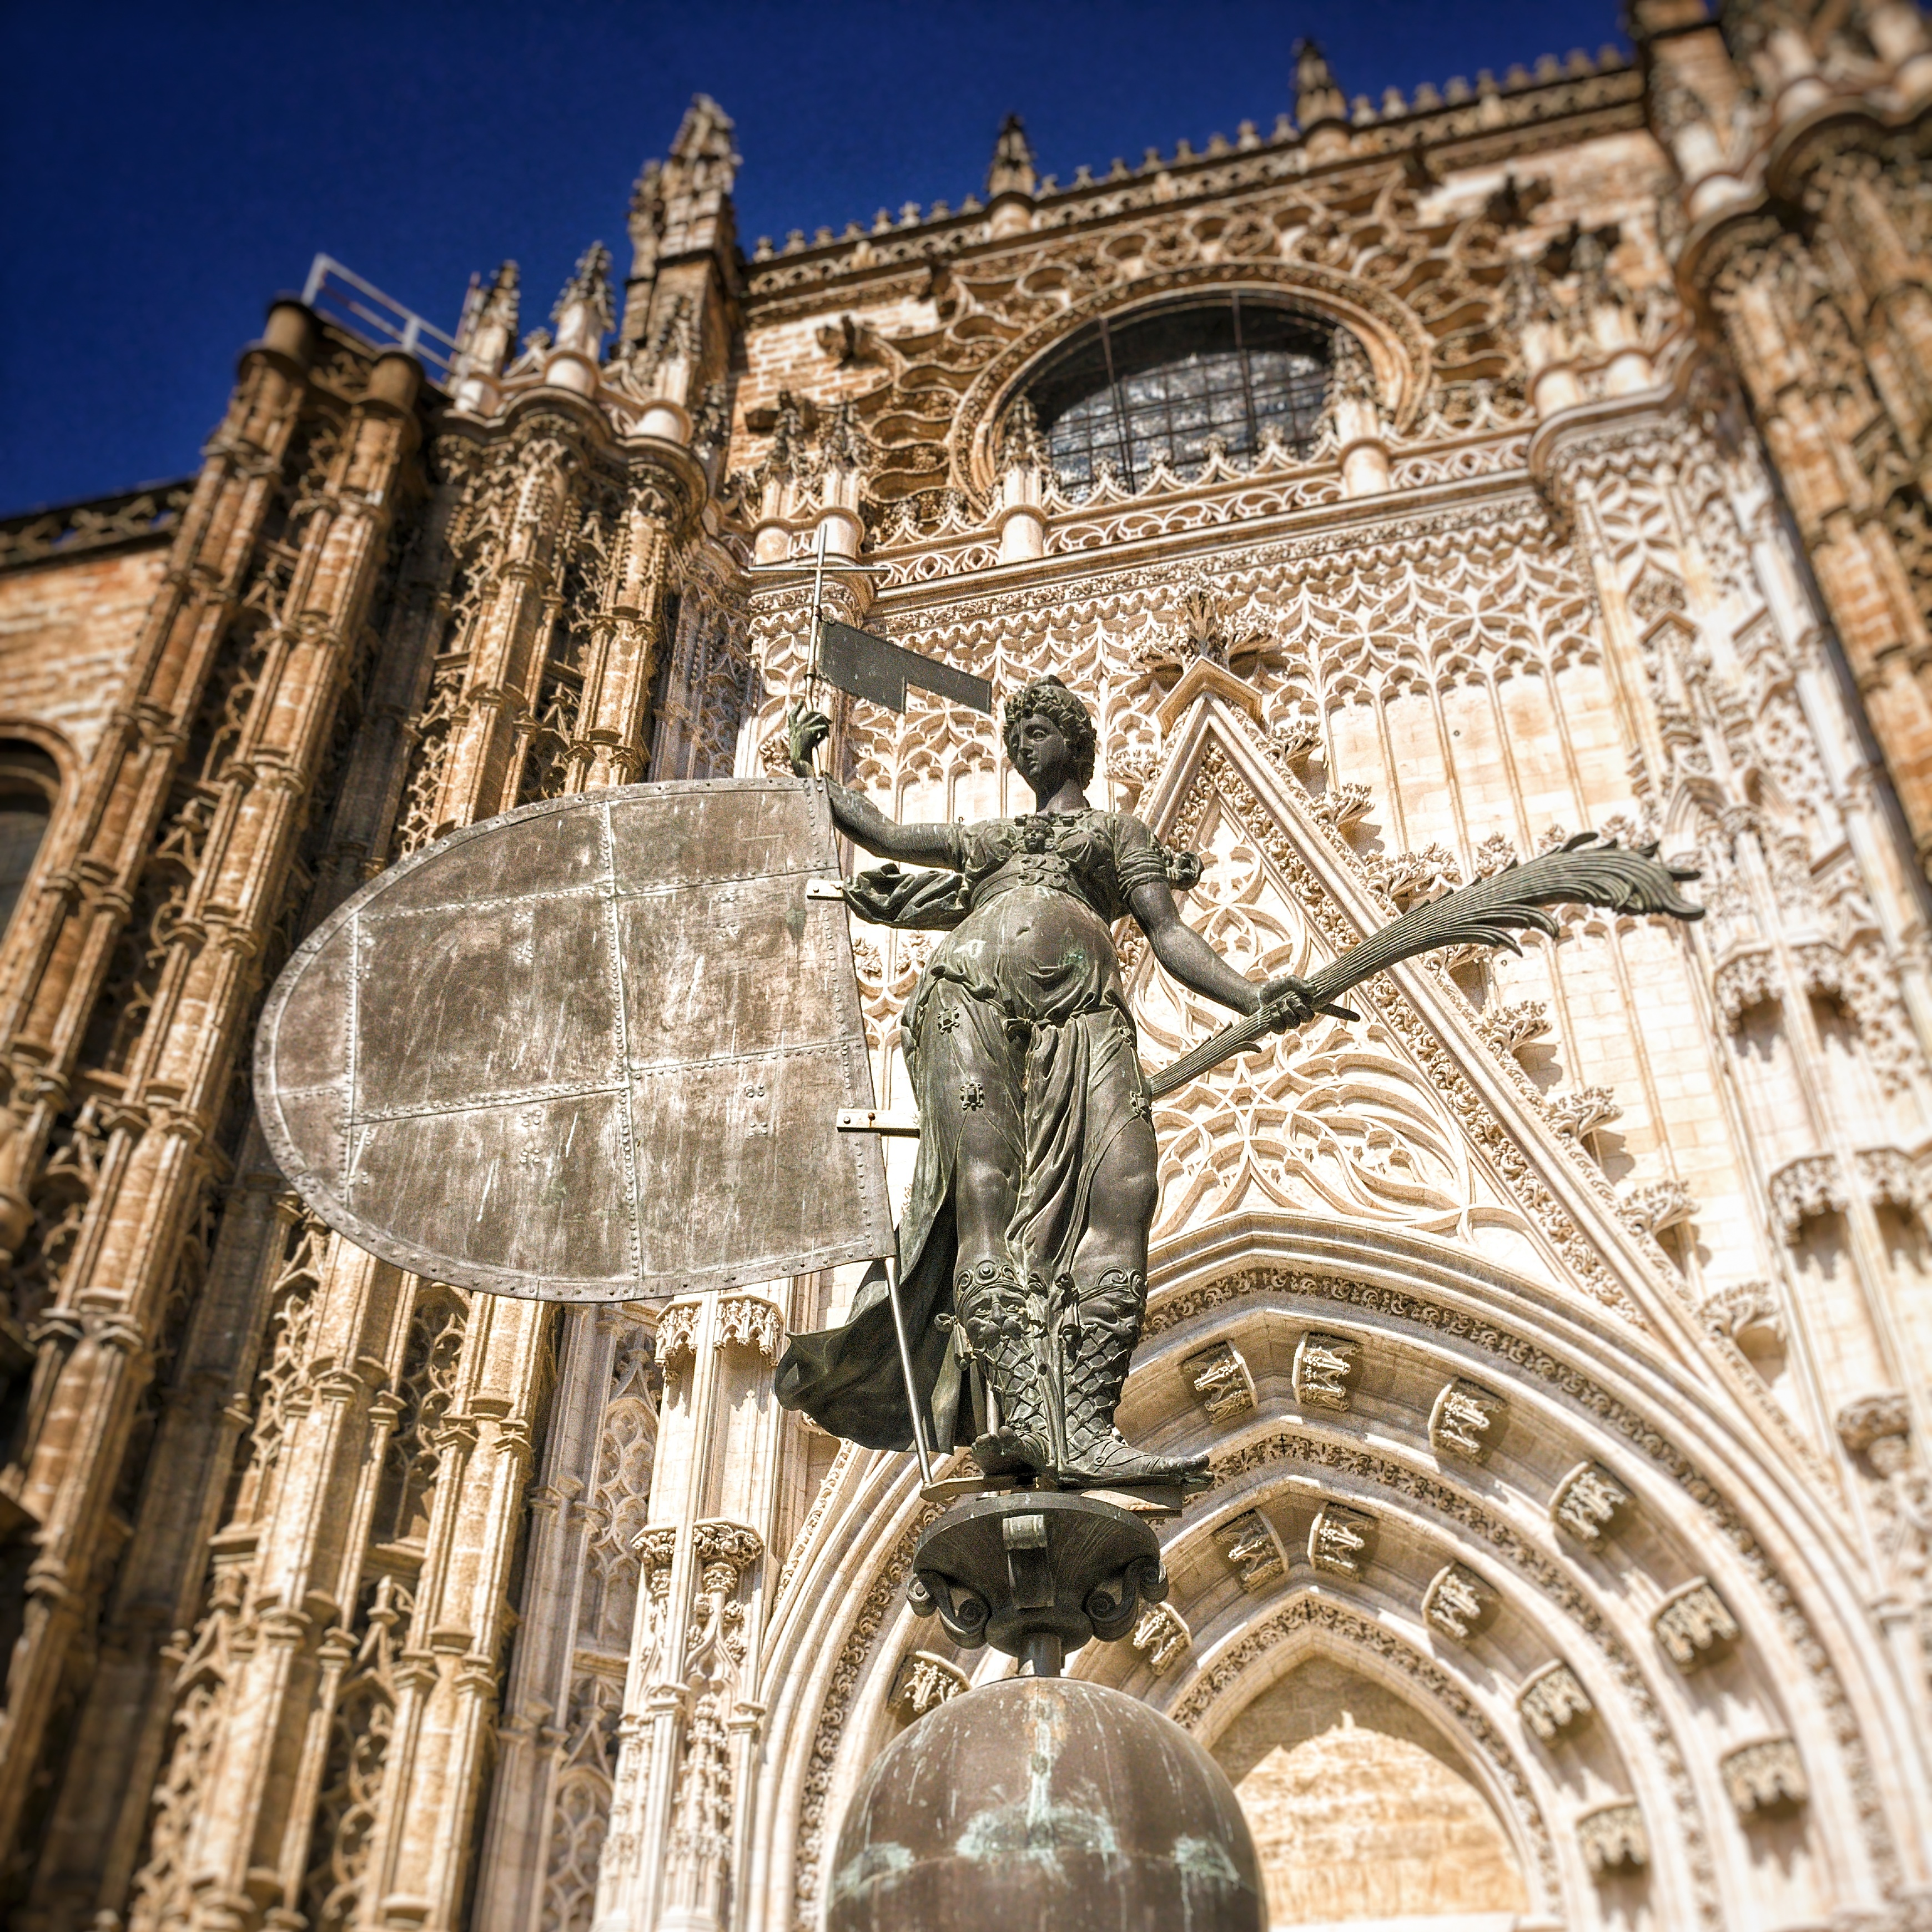 A picture of the replica of the statue on top of the Giralda in front of the entrance of the Cathedral of Sevilla.